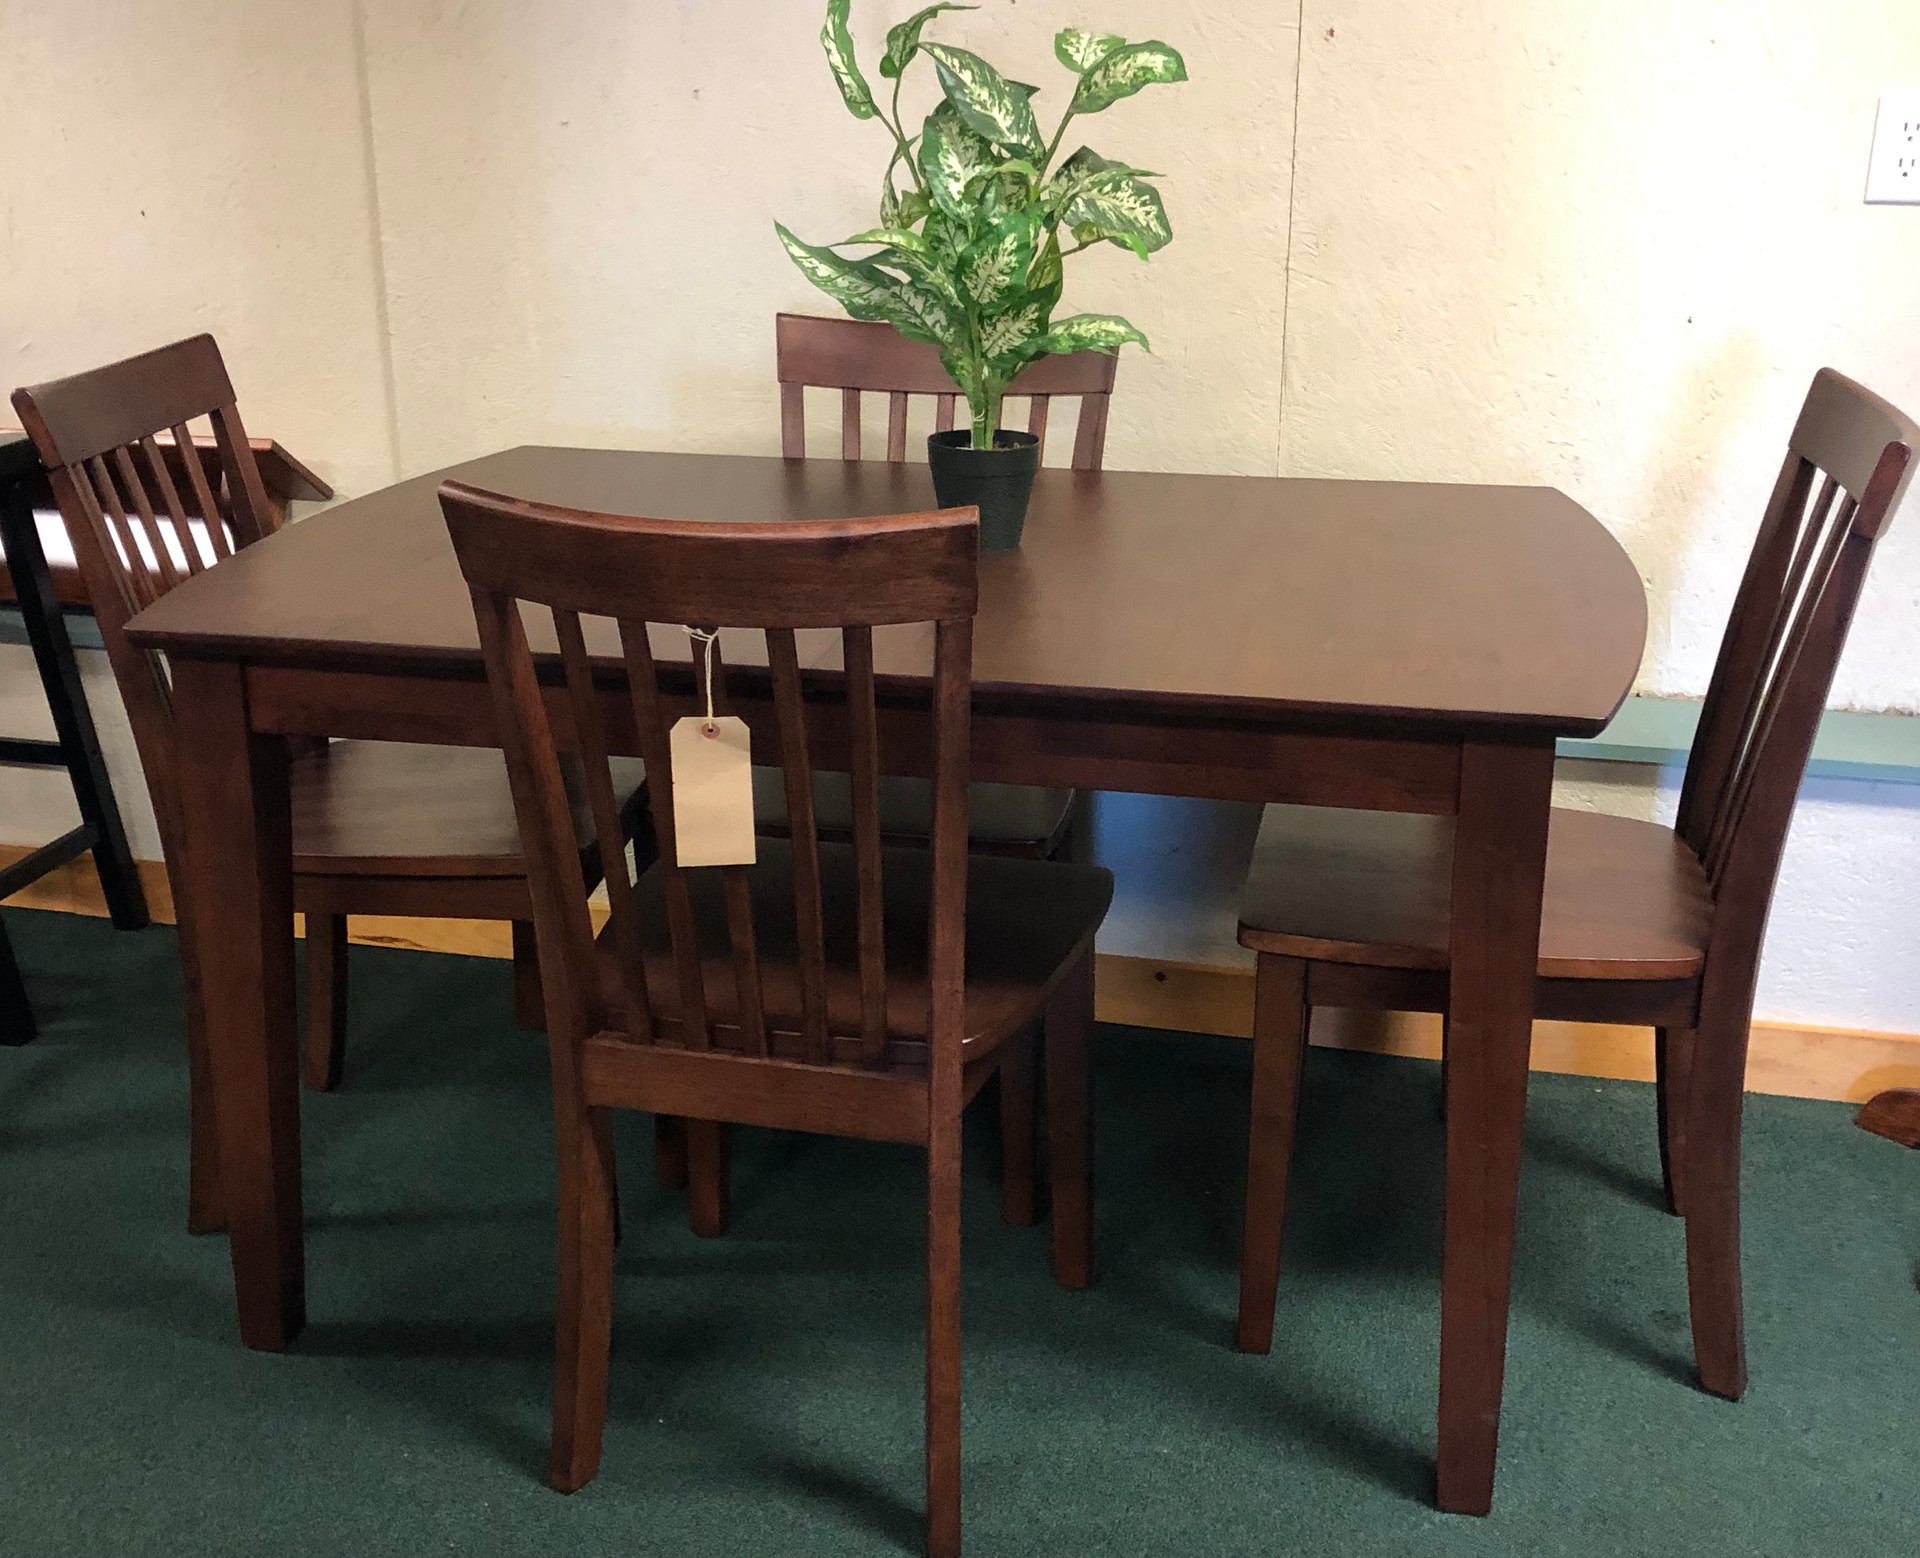 Solid Hardwood Butterfly Leaf Table with 6 Chairs